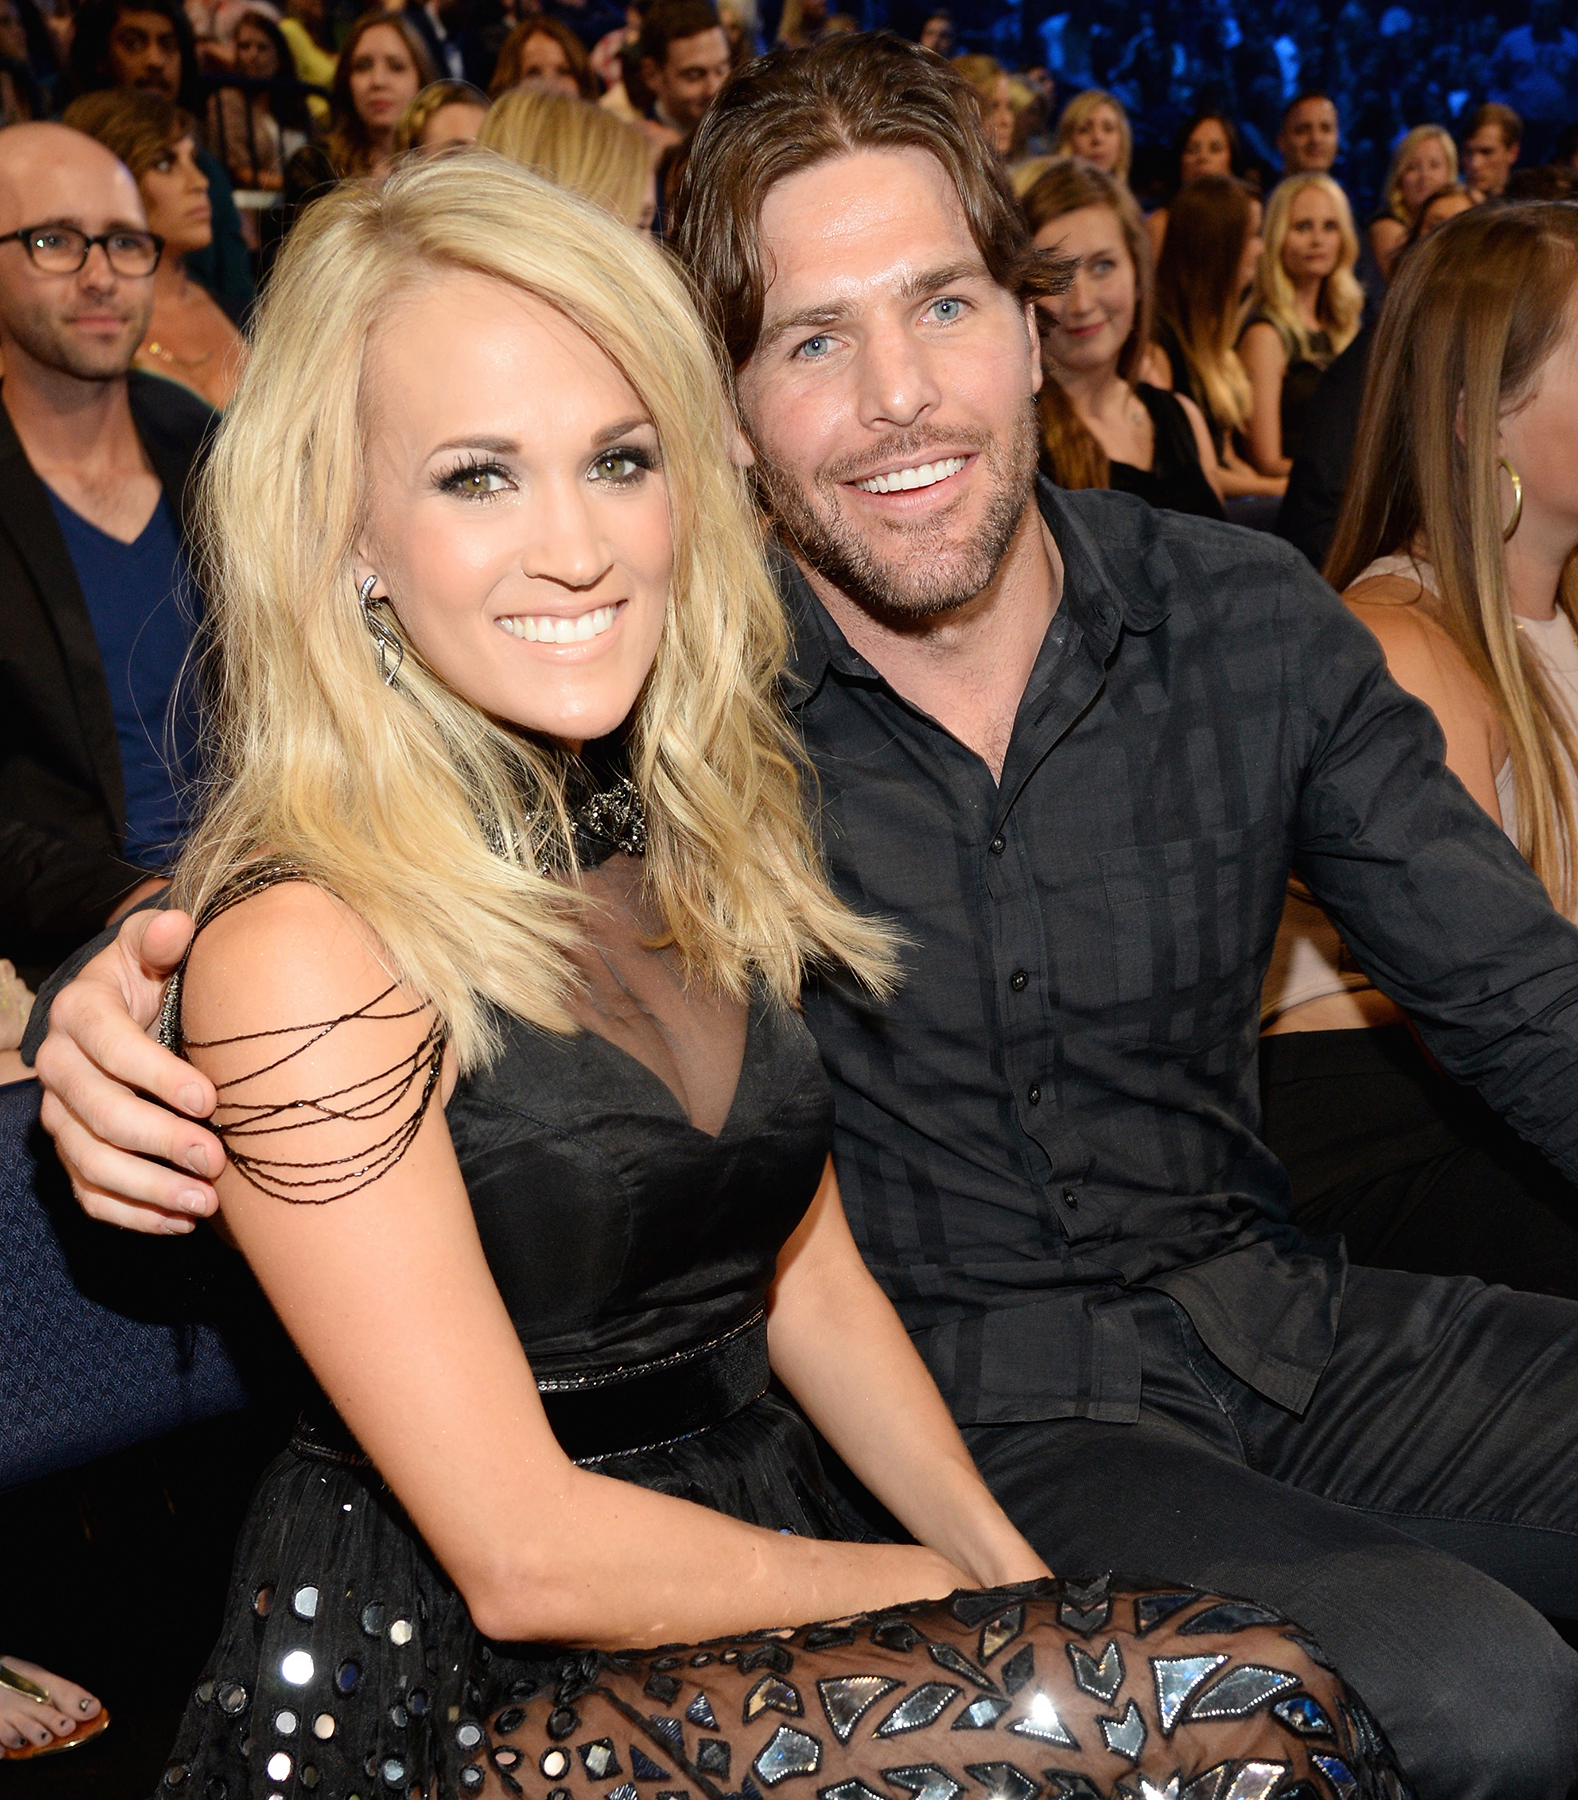 After a fall last November-Carrie Underwood may never look the same